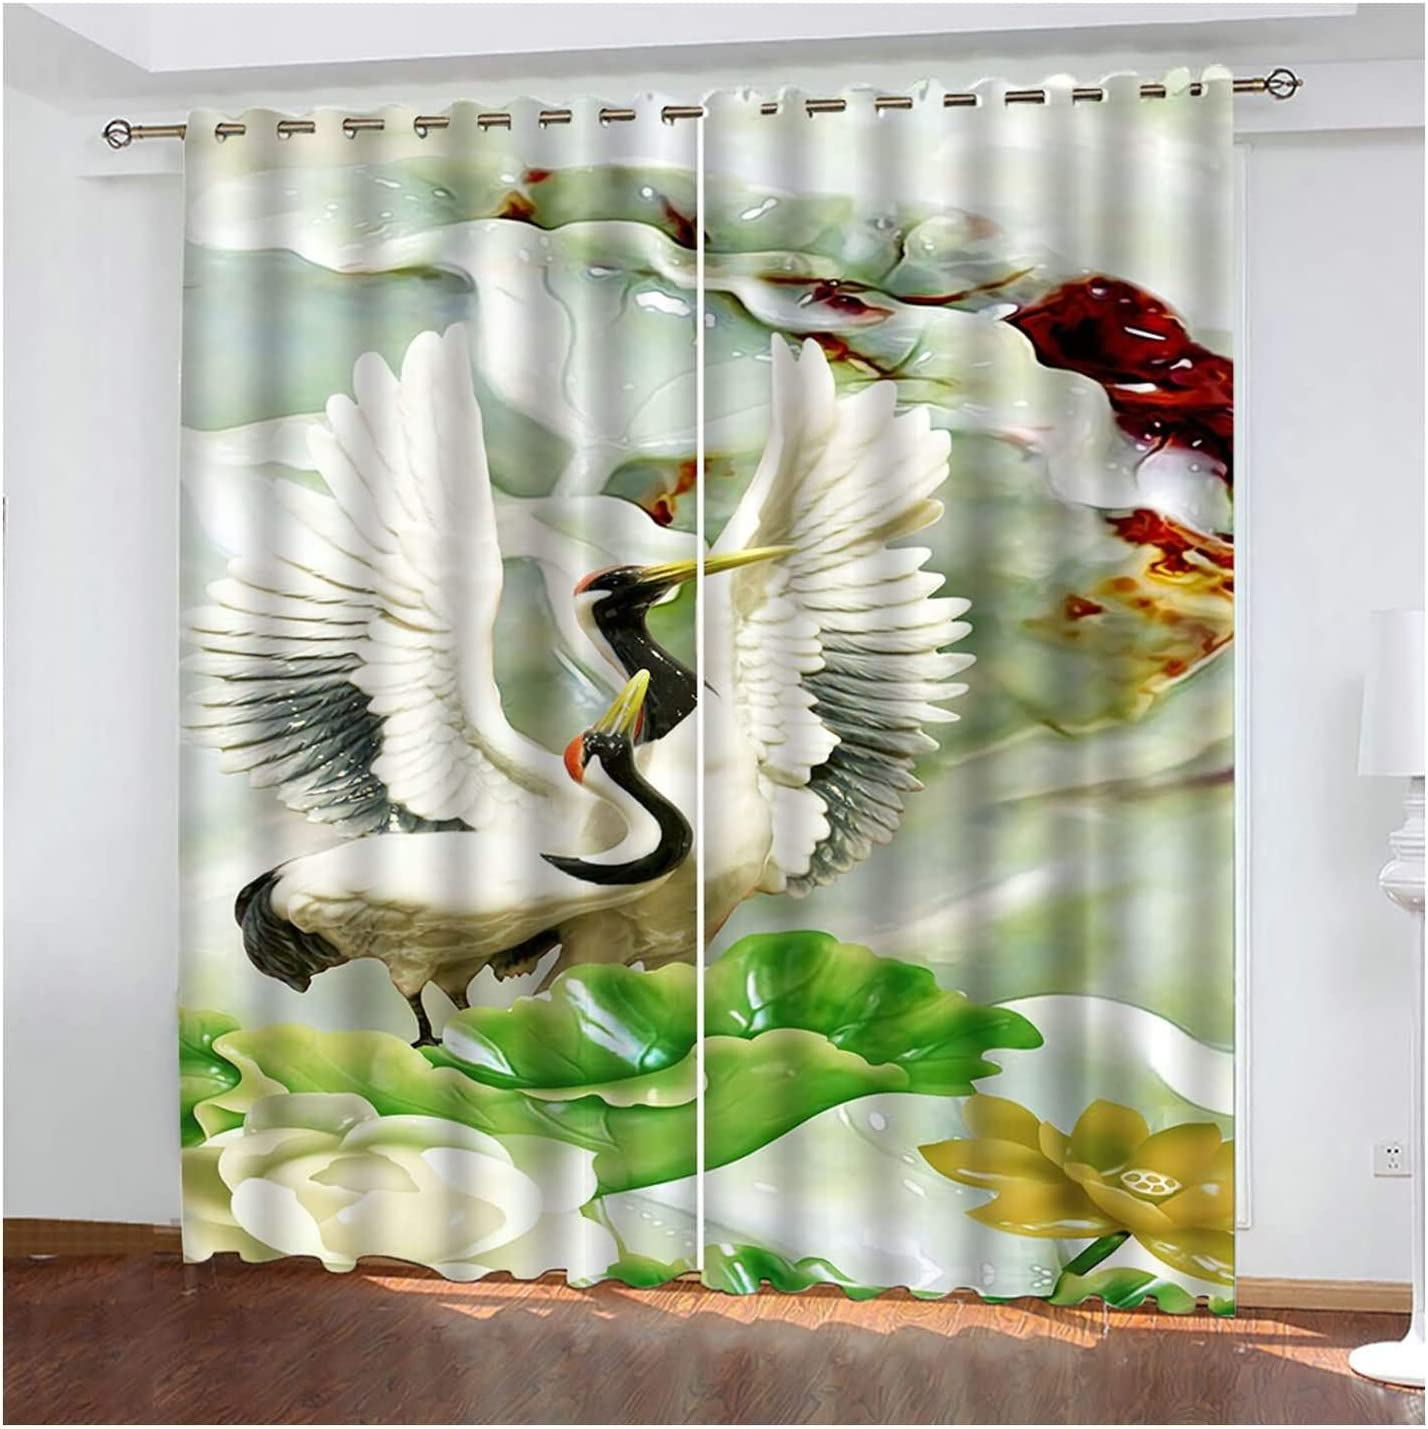 Blackout Curtains for Free shipping on posting reviews Living Popular overseas Room Flower Crane and Gr